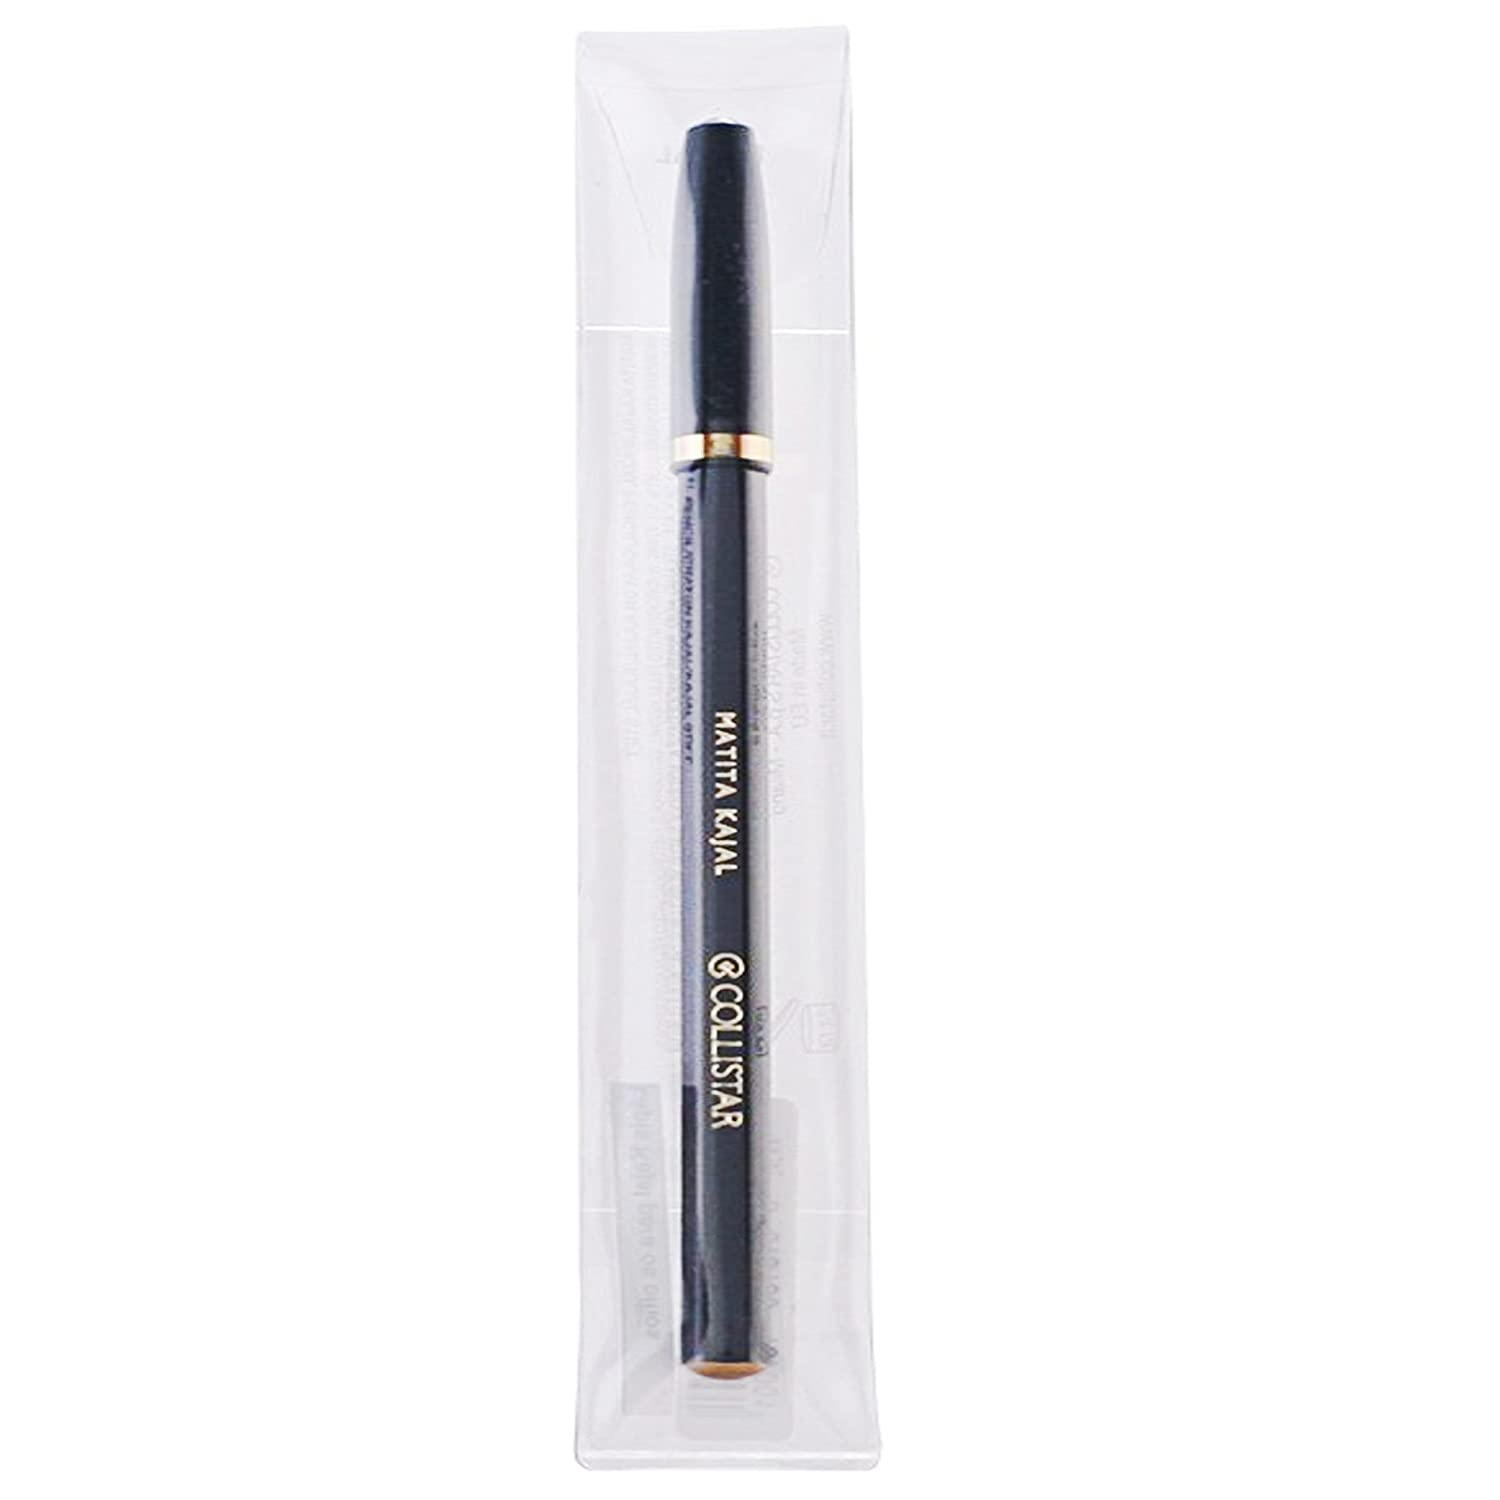 Collistar Kajal Eye Pencil Black